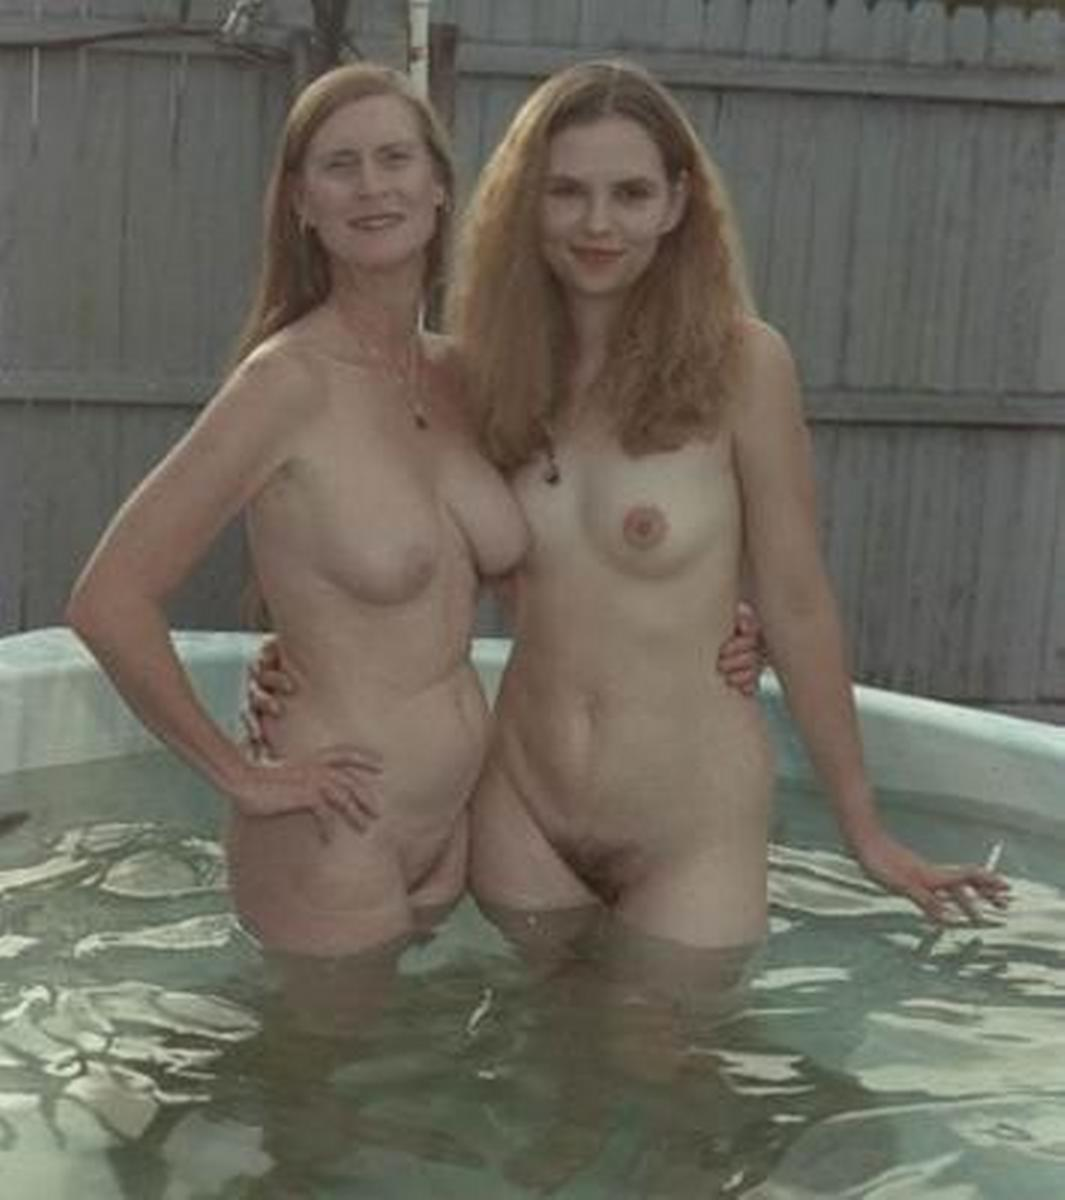 Impossible Mother daughter topless together apologise, but